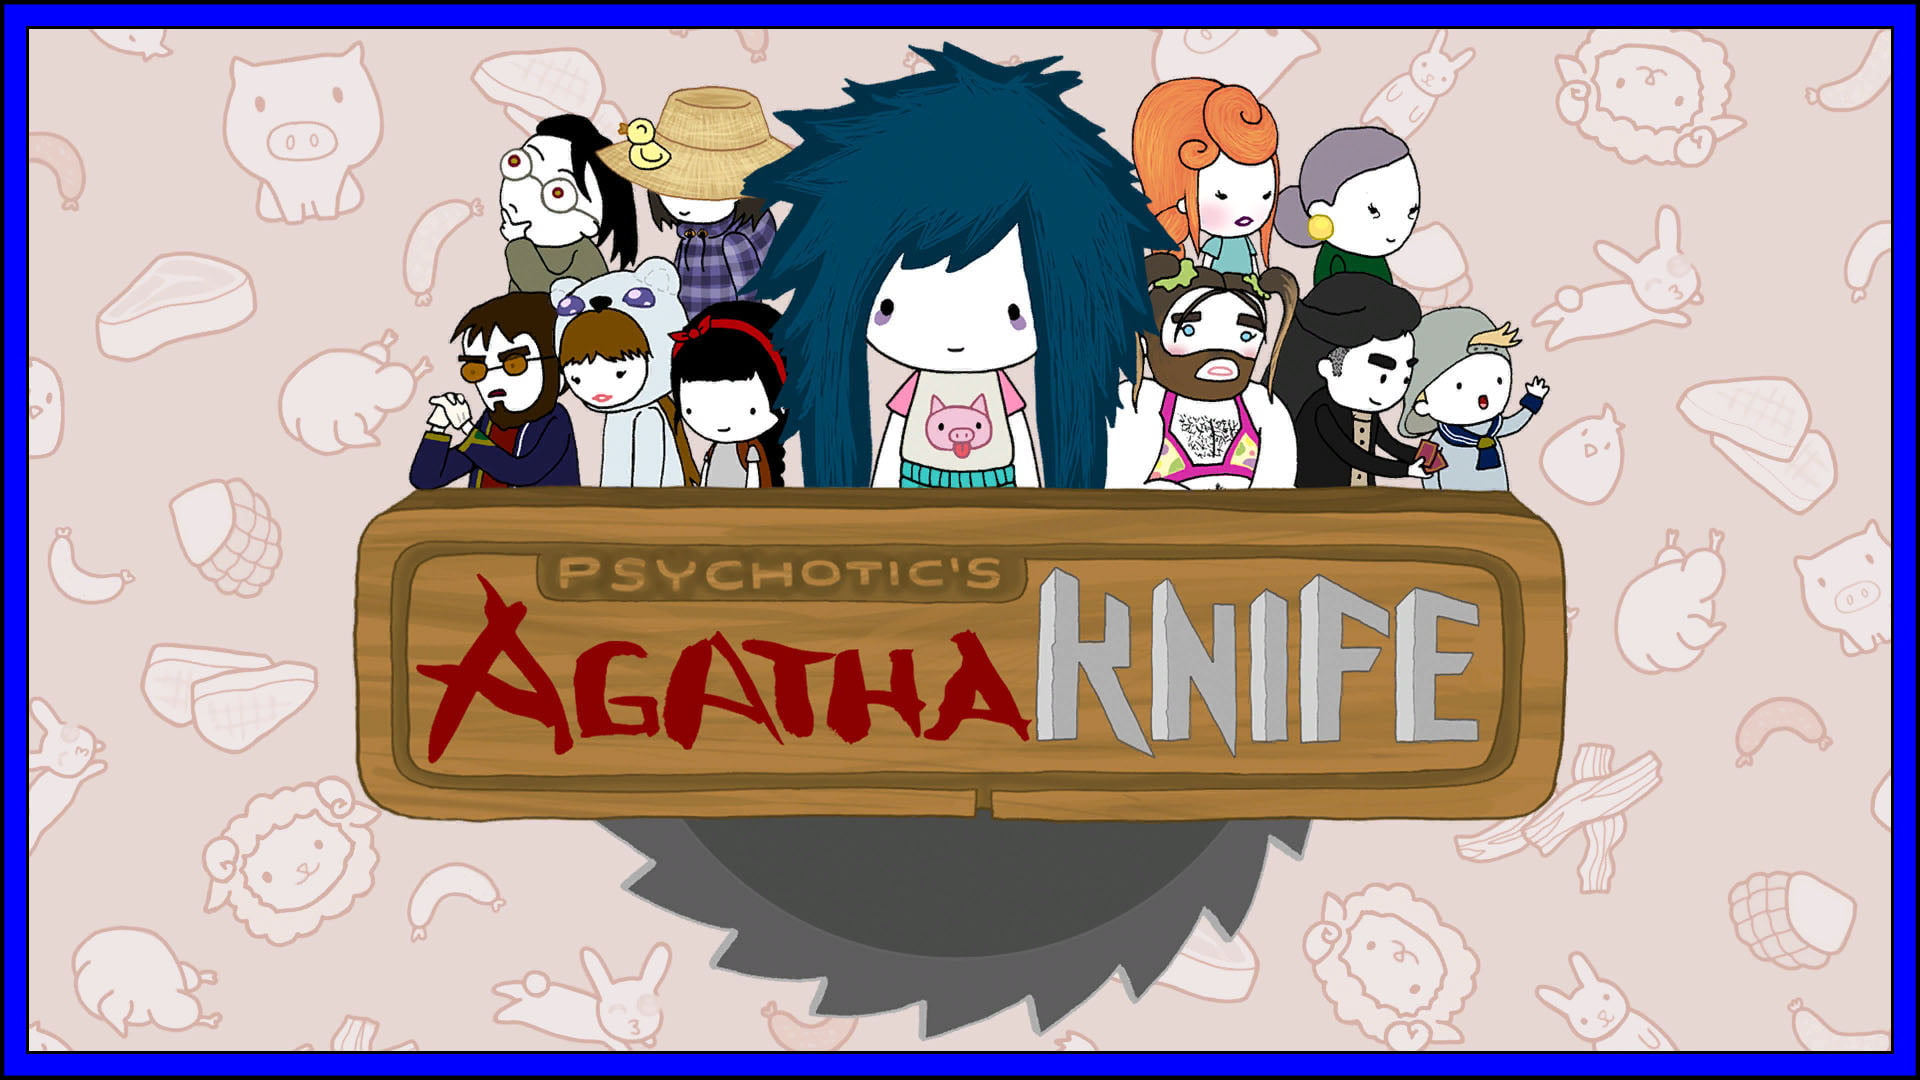 Psychotic's Agatha Knife (PS4) Review